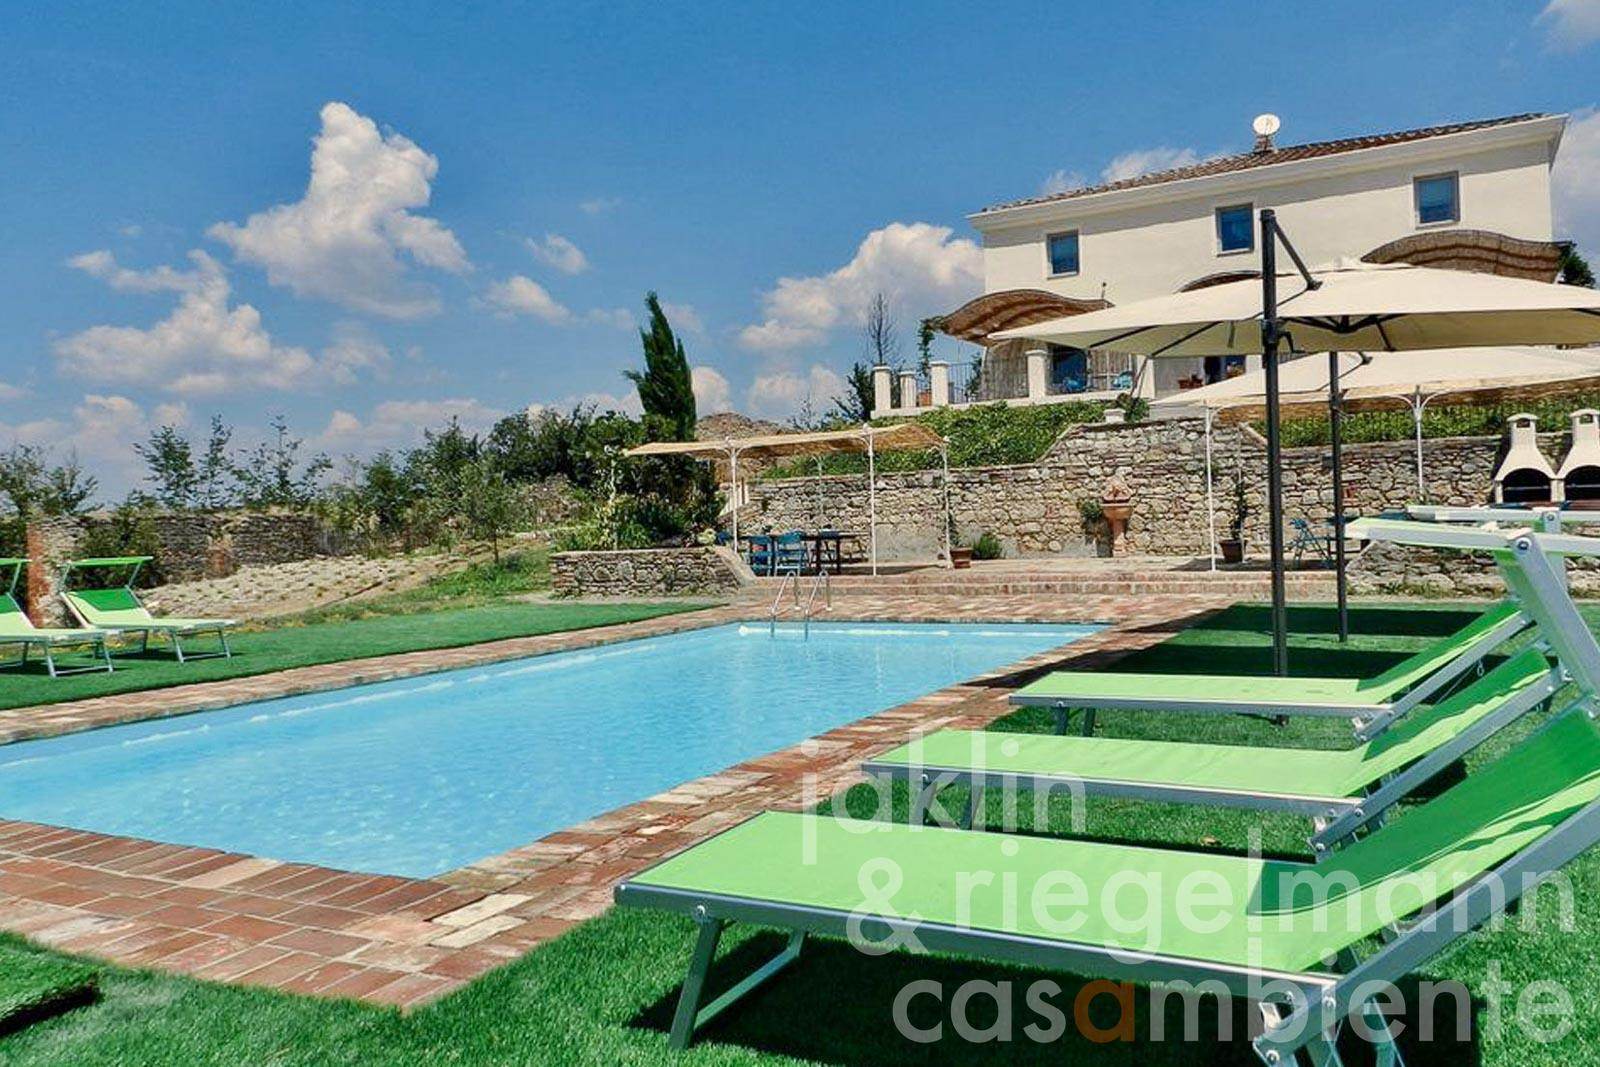 Elegant villa with pool and annex building to restore, with breathtaking views close to Siena in Tuscany